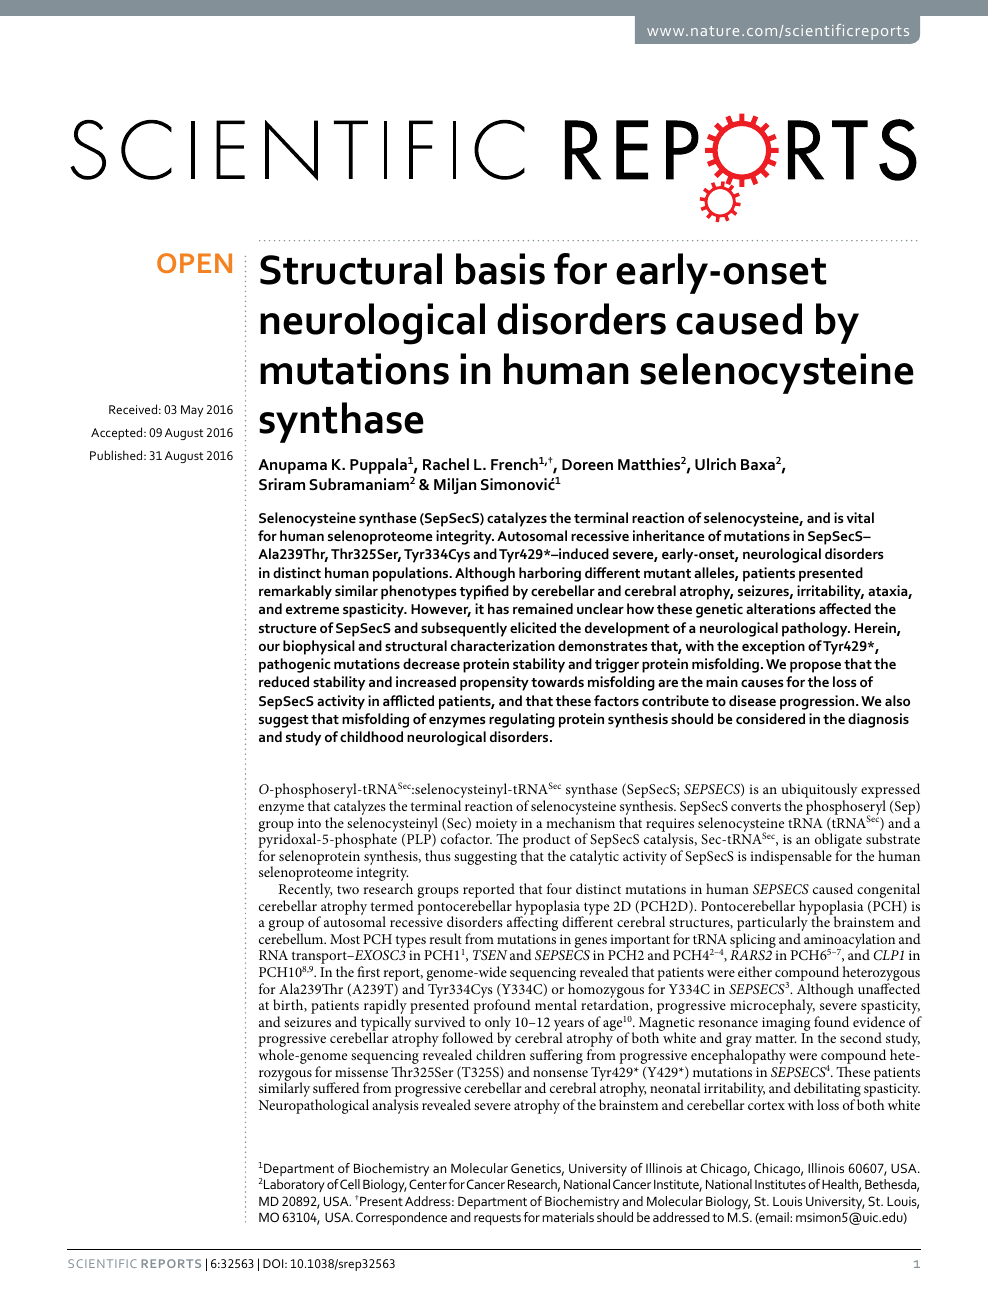 Genetic Mutation May Cause Early Onset >> Structural Basis For Early Onset Neurological Disorders Caused By